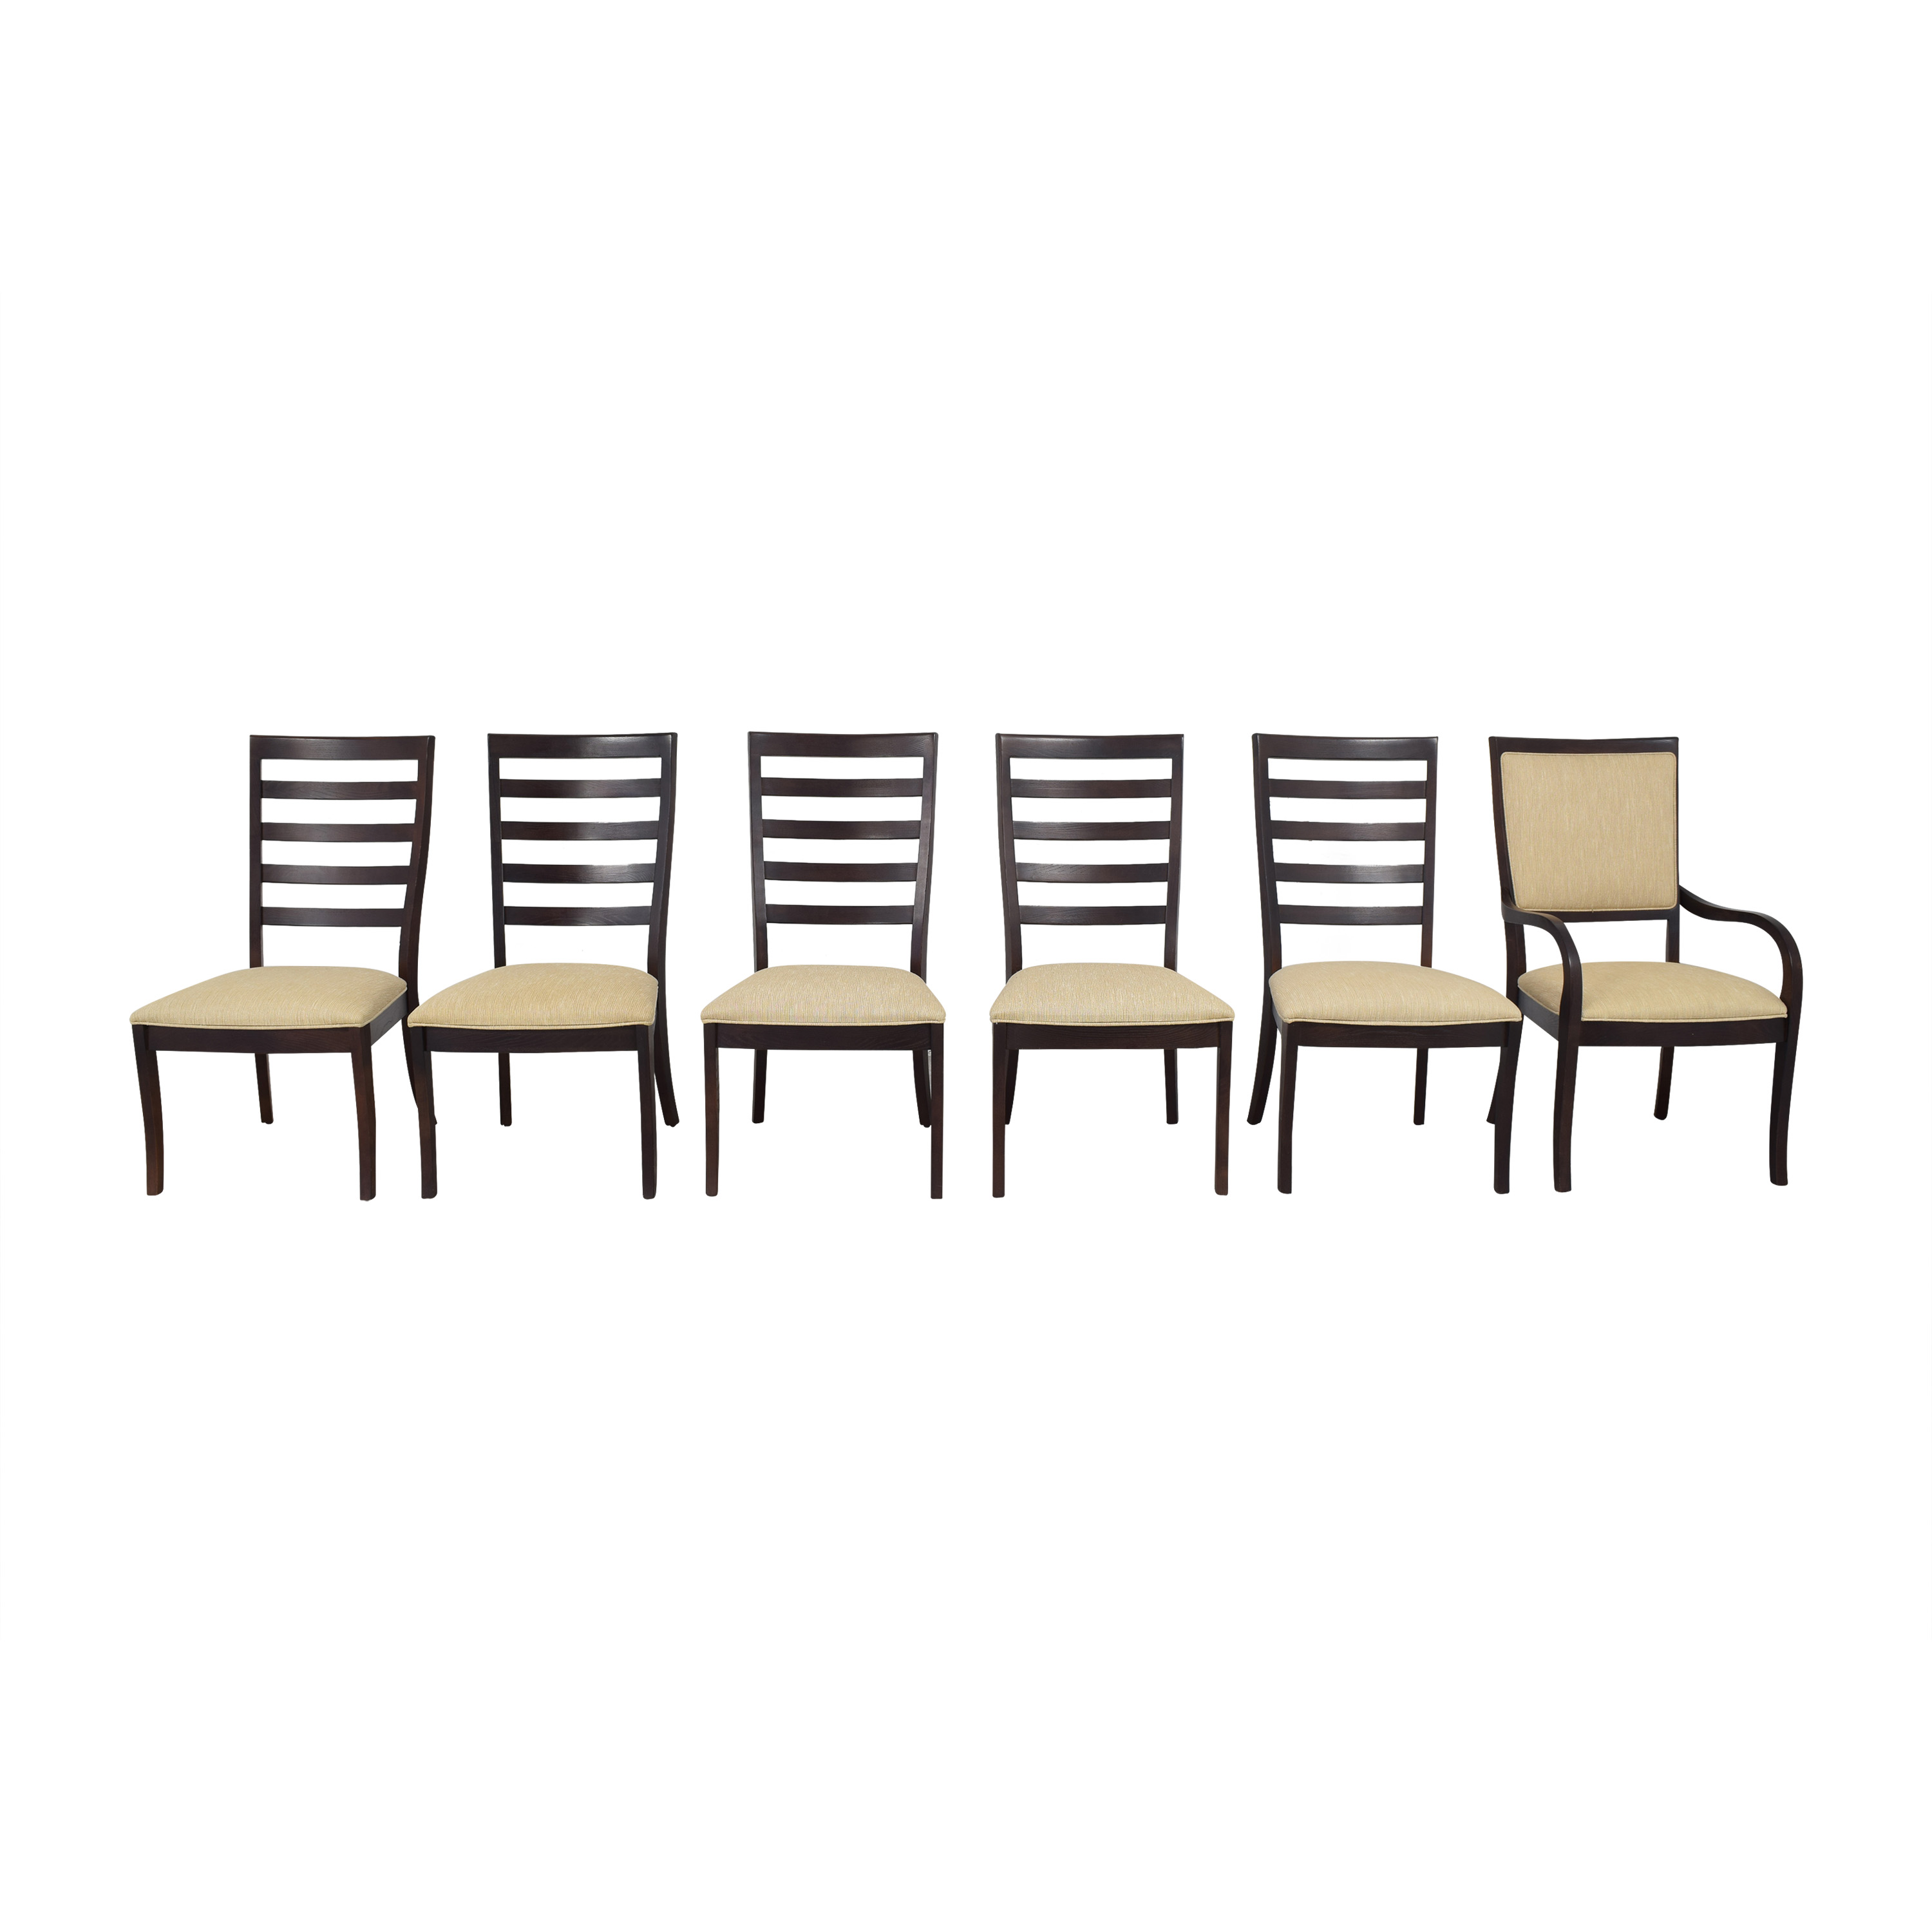 Stanley Furniture Stanley Slat Dining Chairs pa